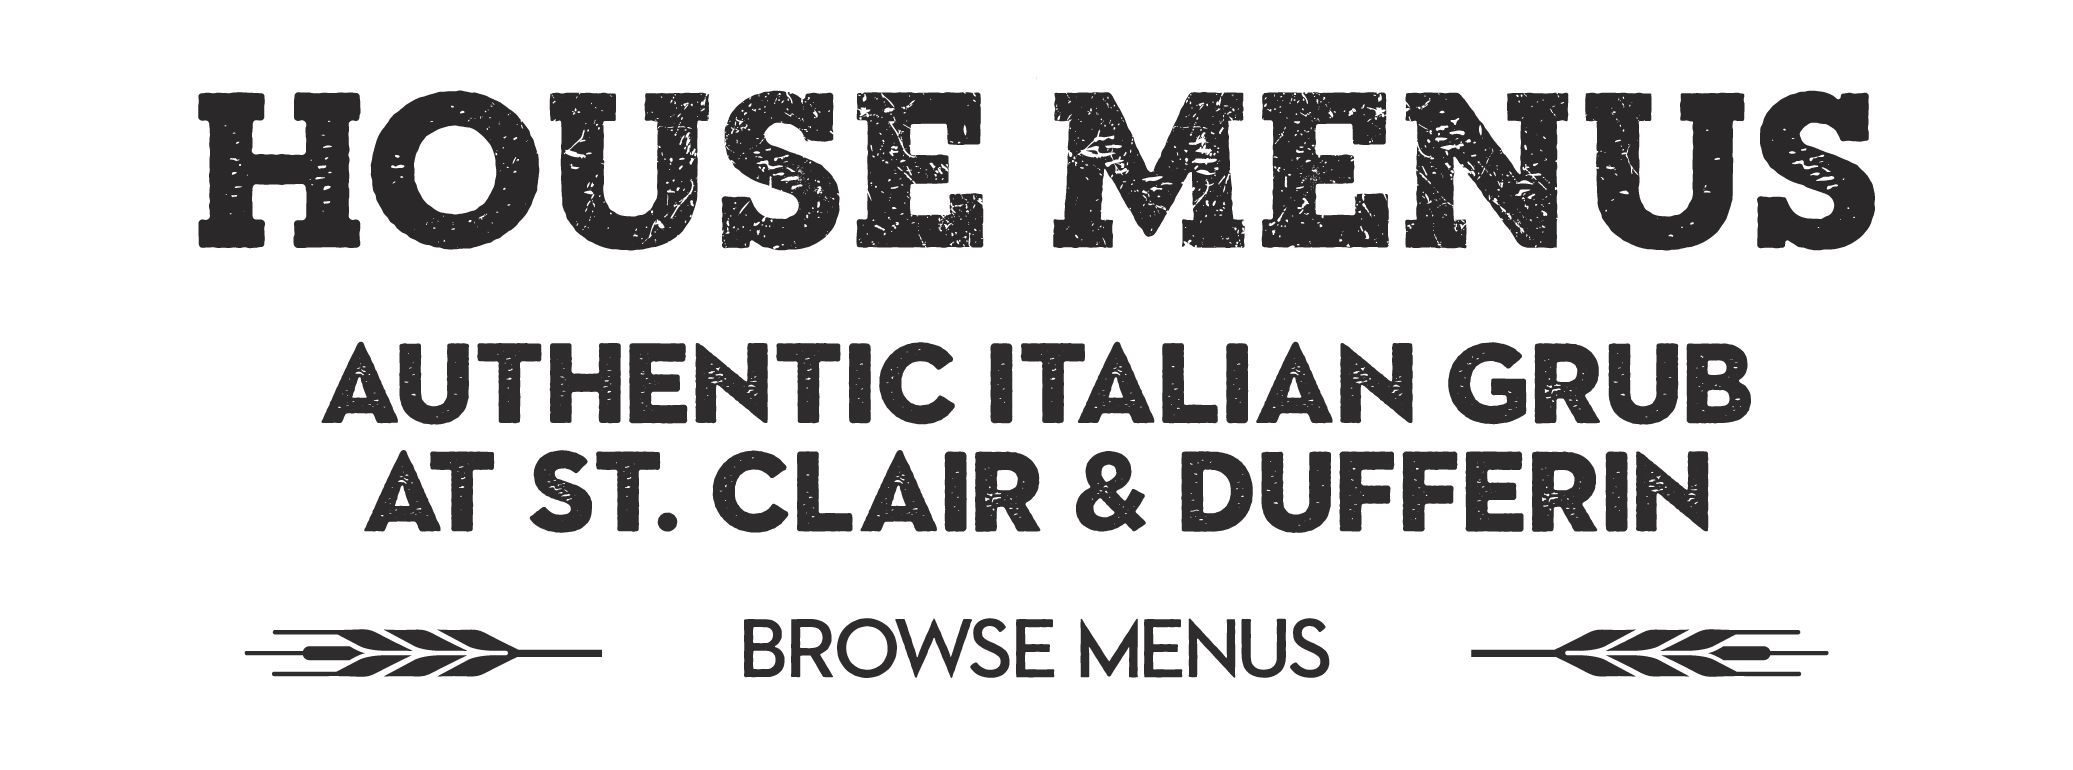 HEADING TEXT: HOUSE MENUS - AUTHENTIC ITALIAN GRUB AT ST. CLAIR & DUFFERIN